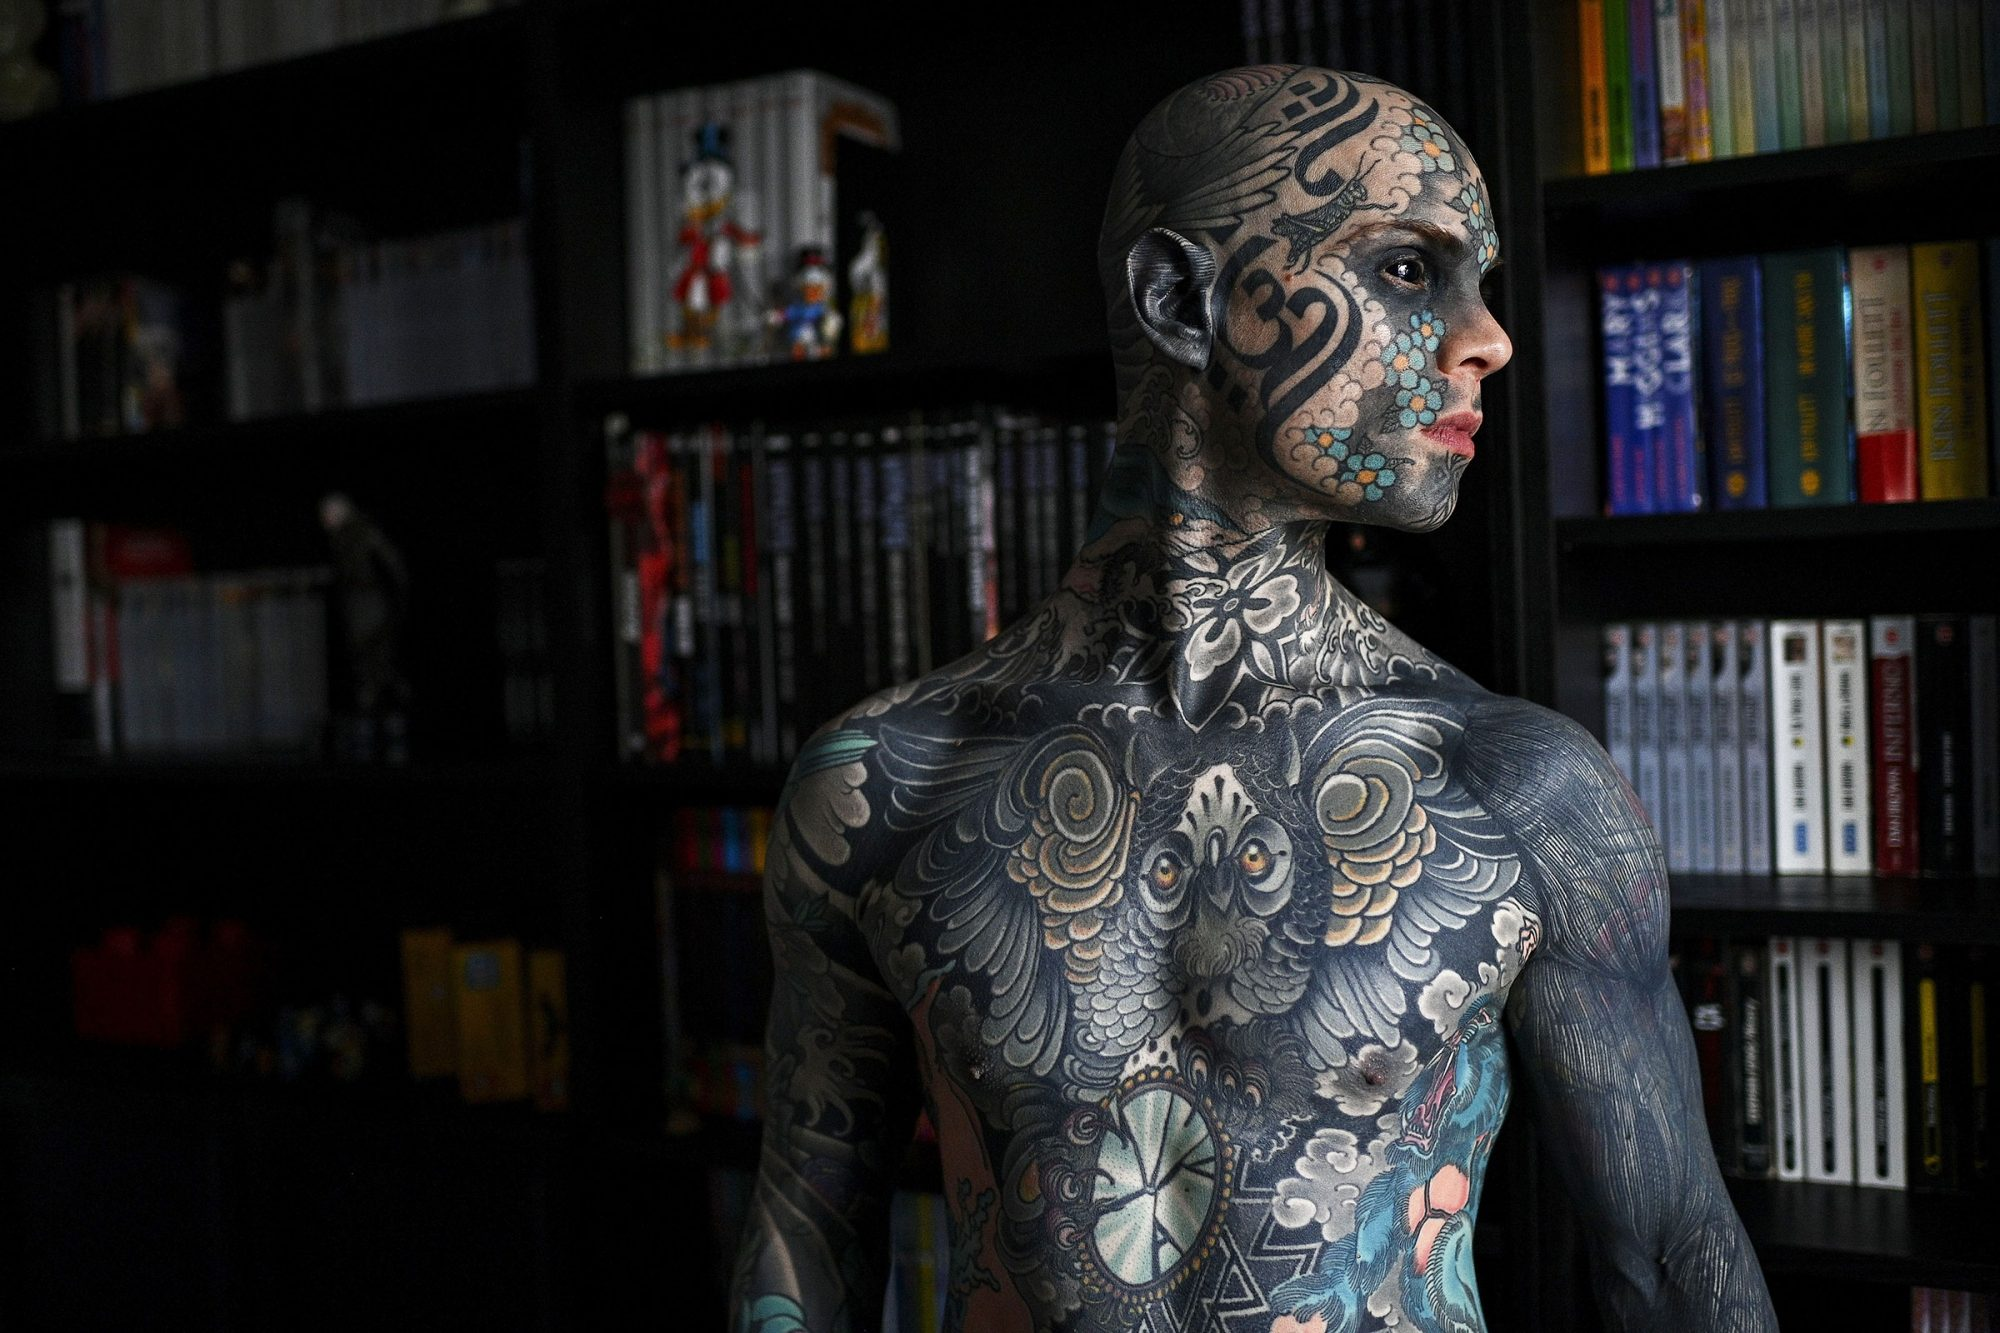 French primary school teacher and tattoo enthusiast Sylvain Helaine